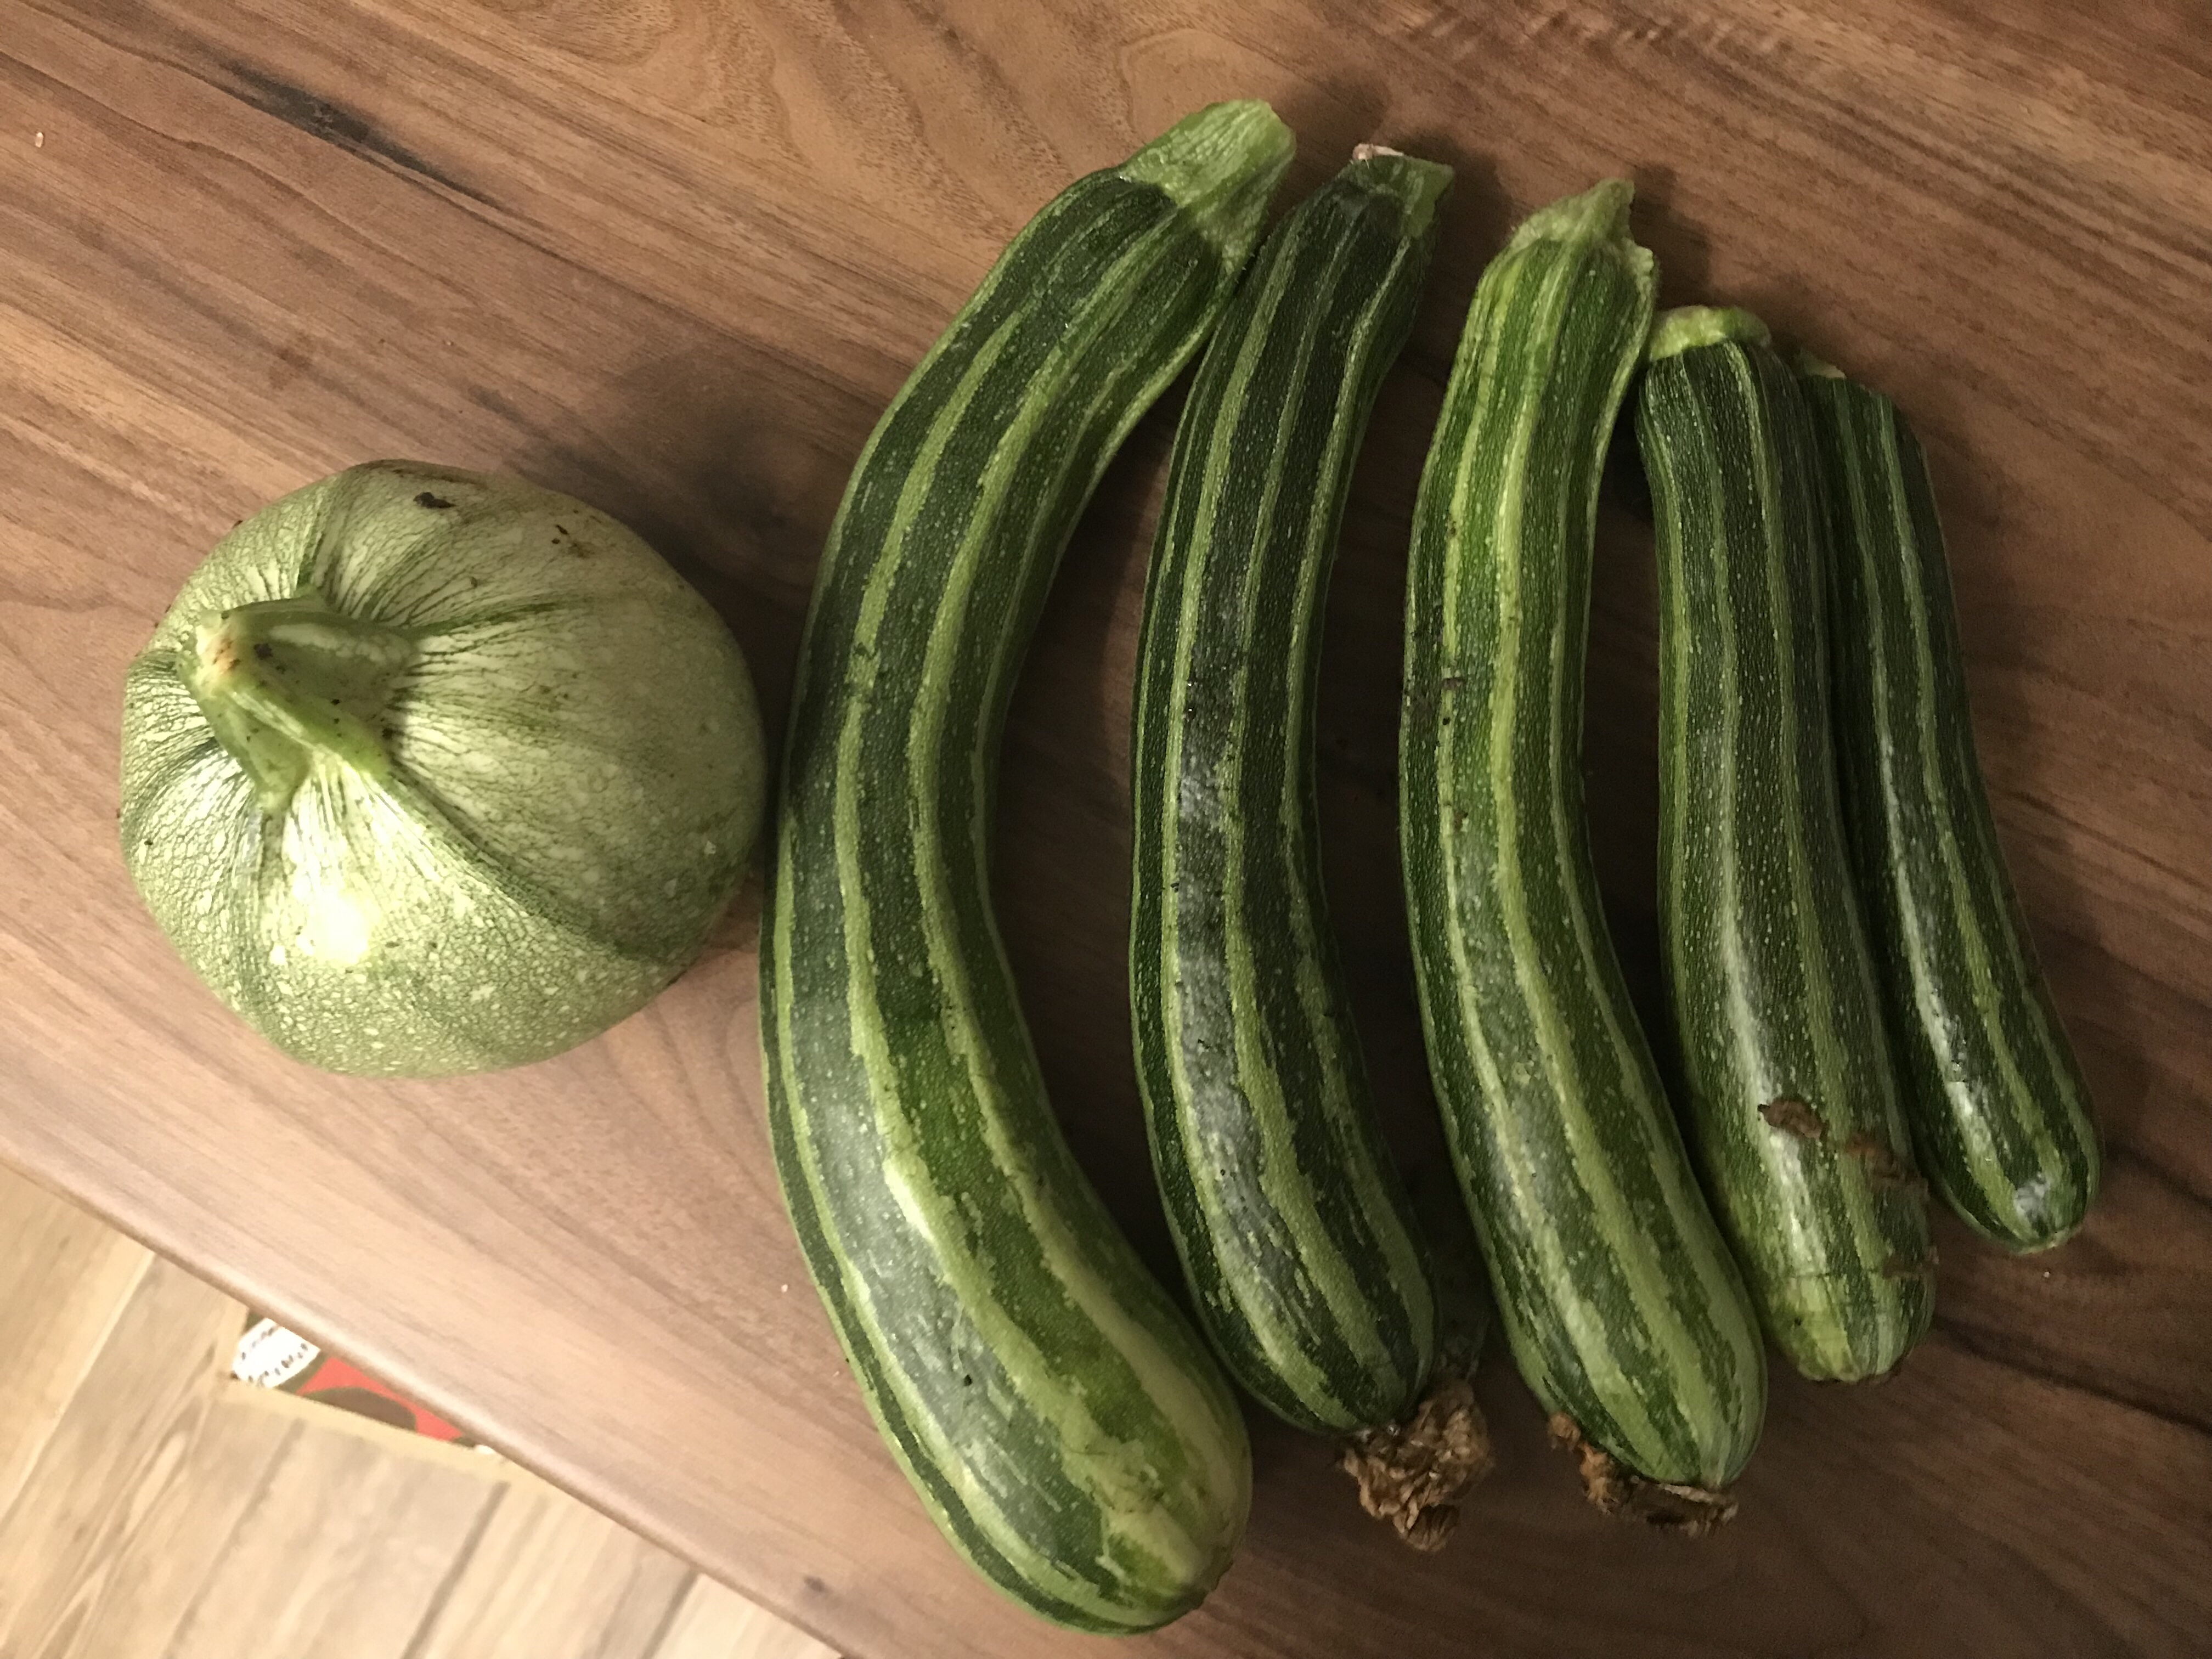 Lots of courgettes